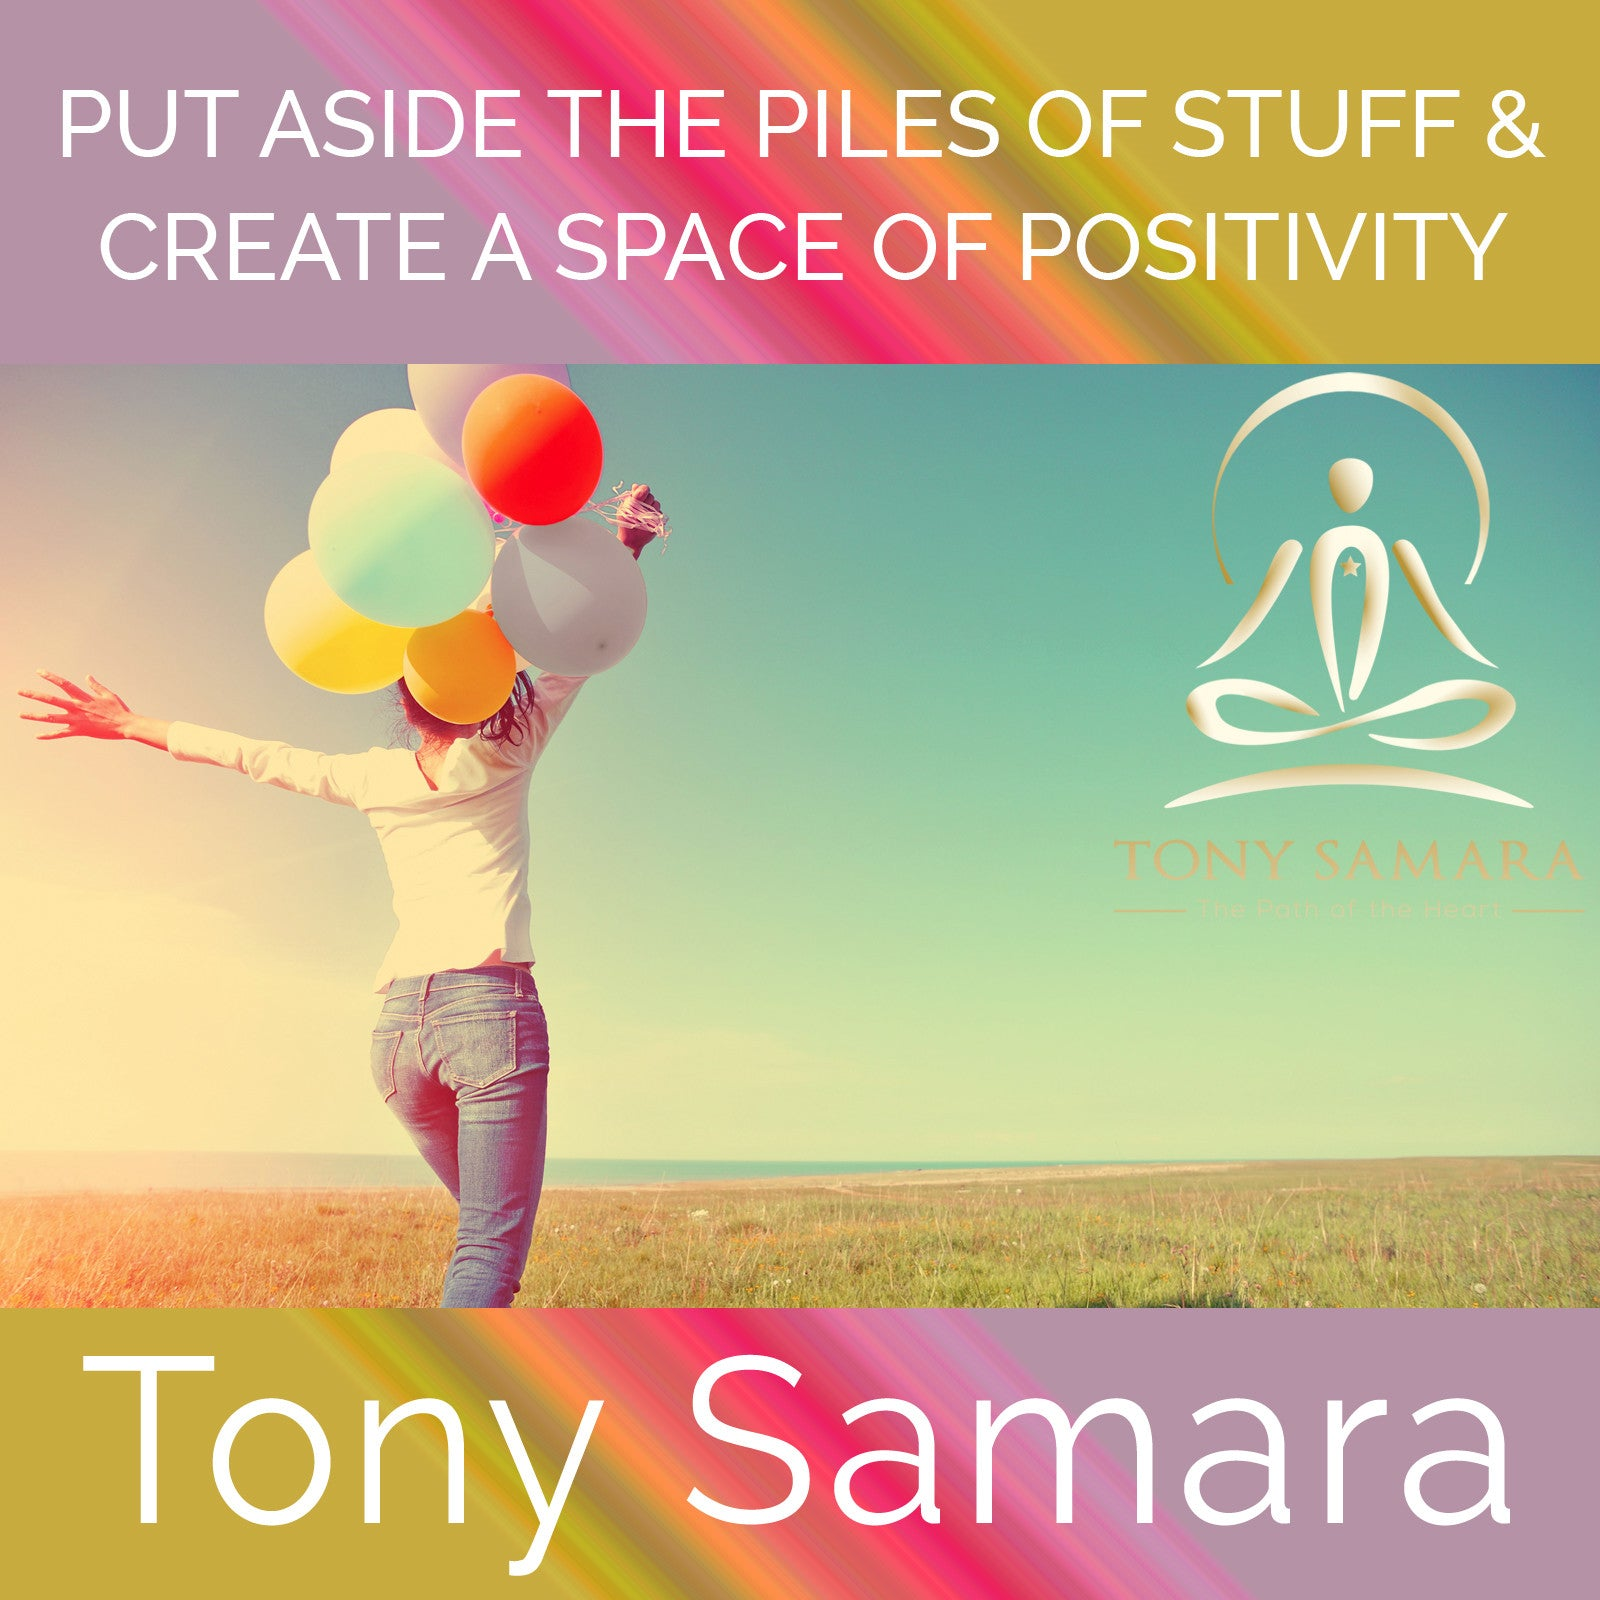 Put Aside the Piles of Stuff & Create a Space of Positivity (MP3 Audio Download) - Tony Samara Meditation